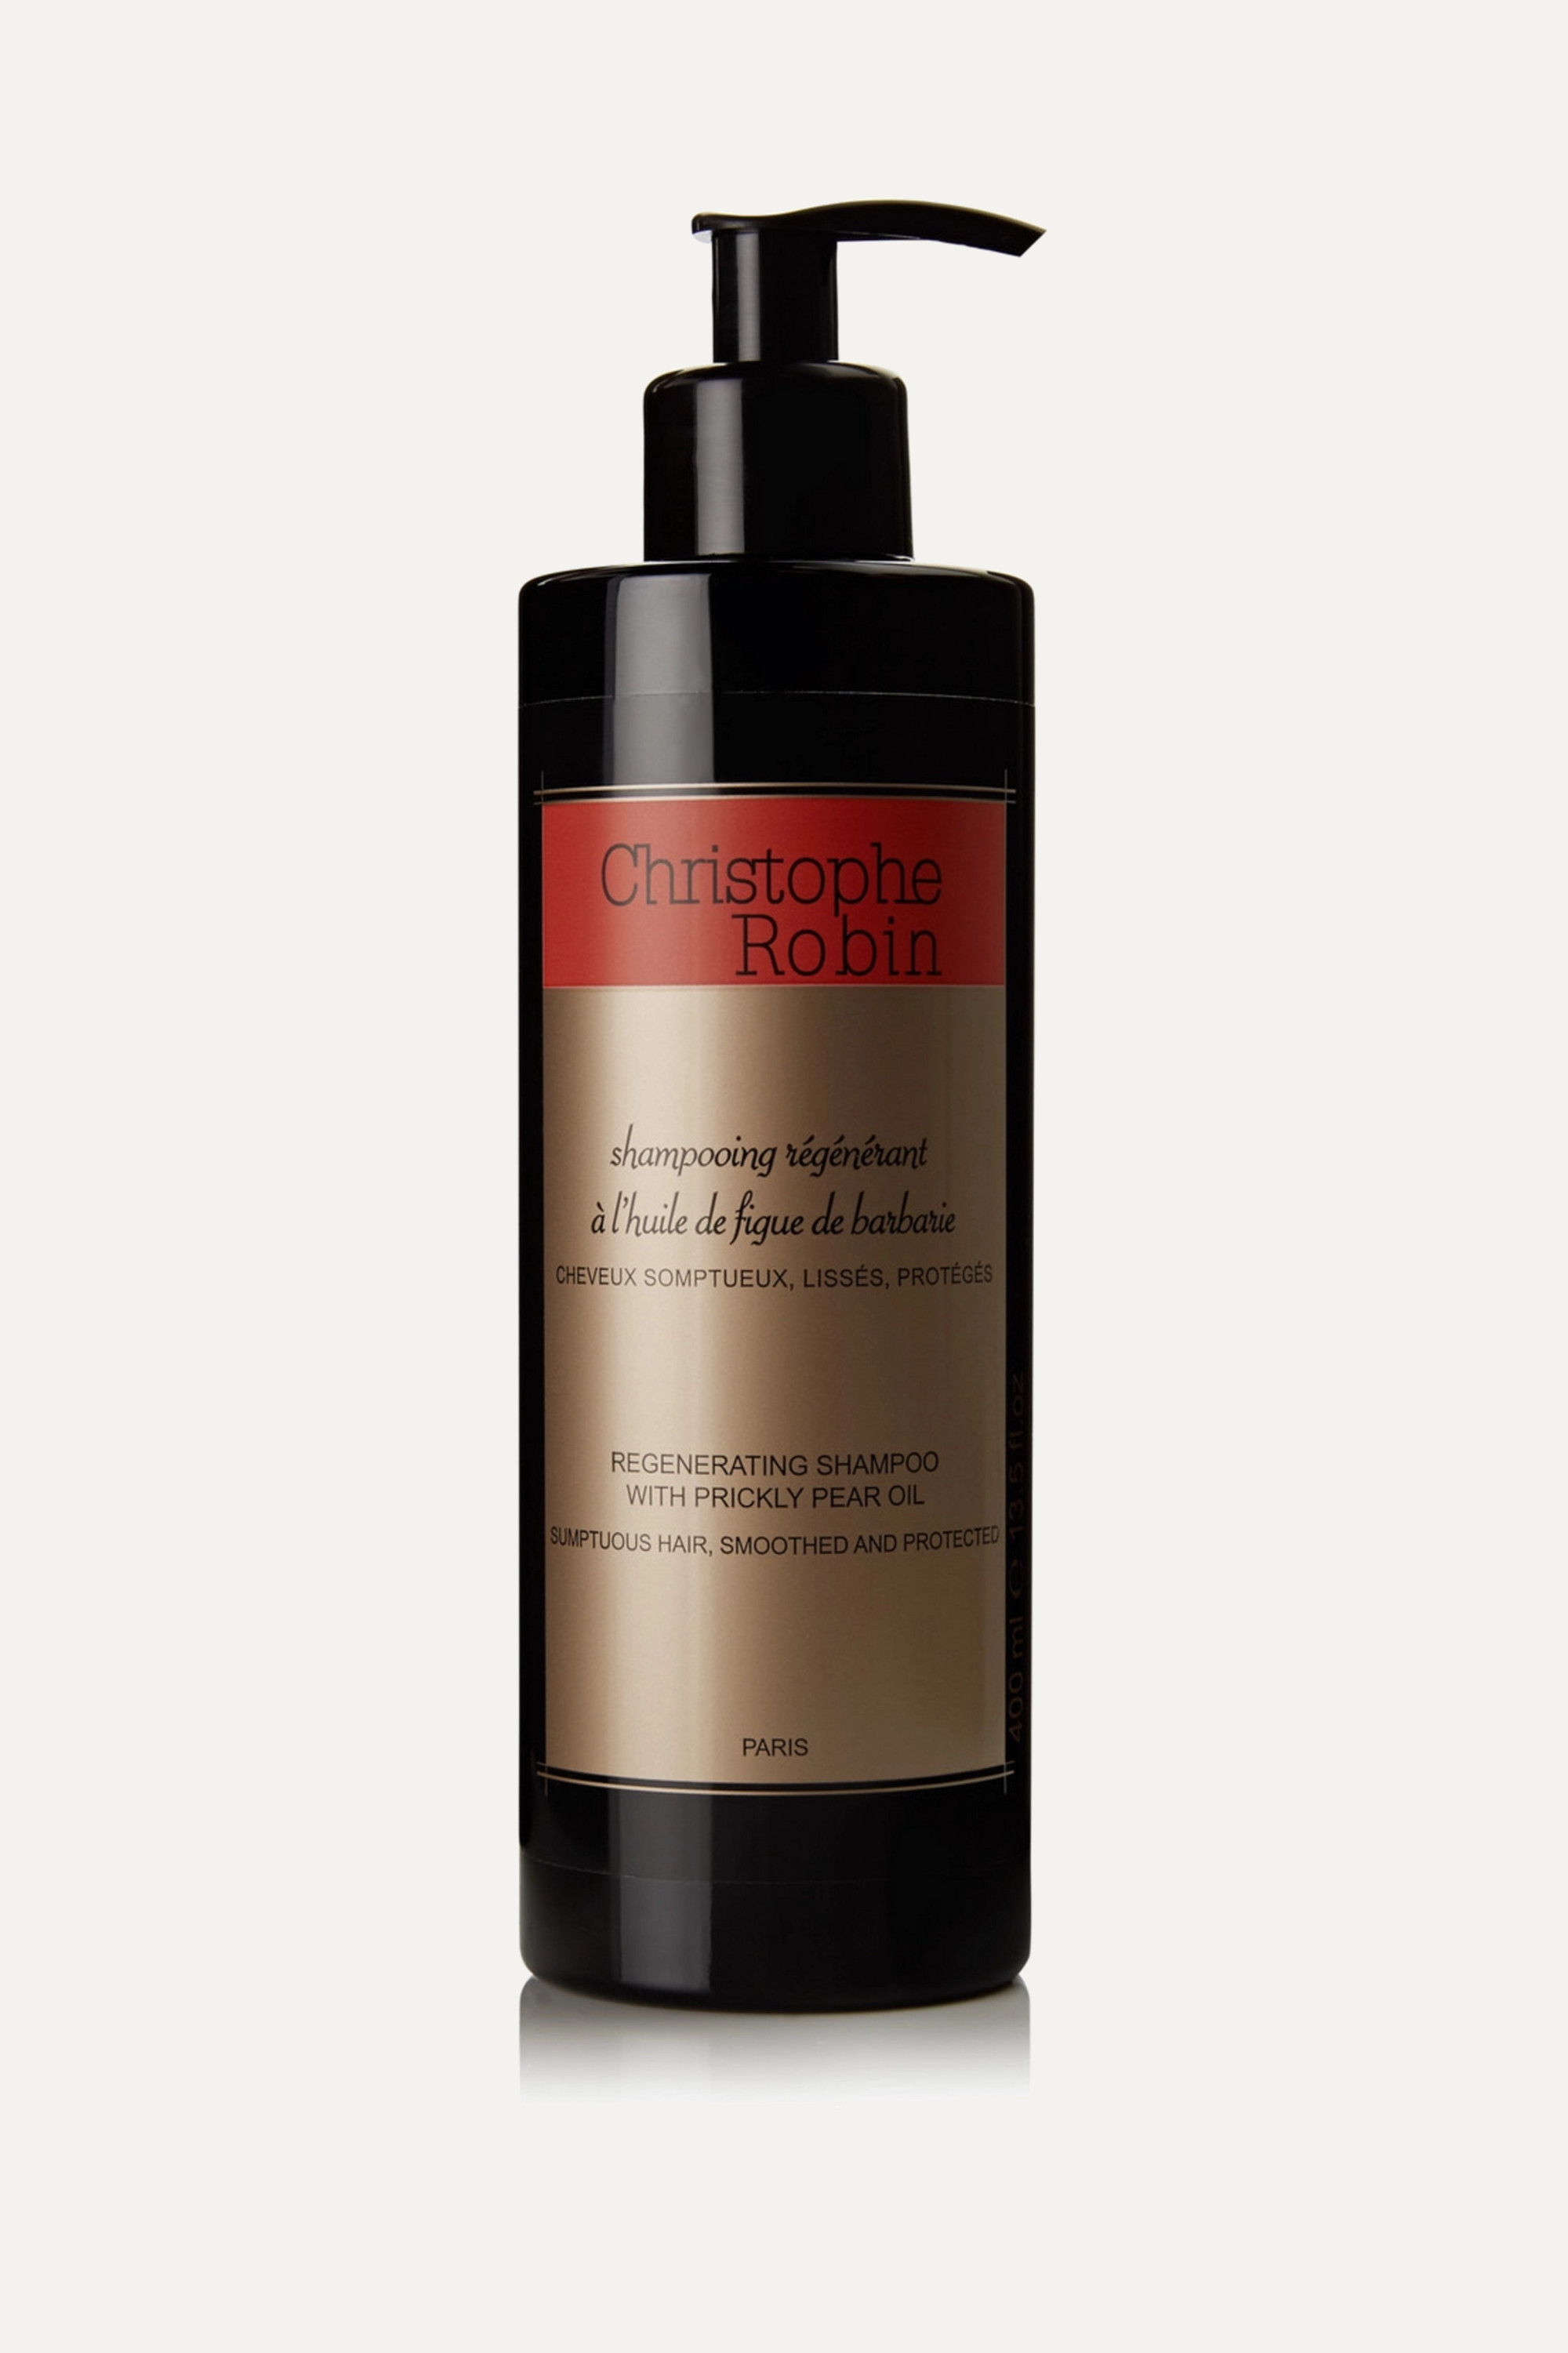 Christophe Robin Regenerating Shampoo with Prickly Pear Oil, 400ml